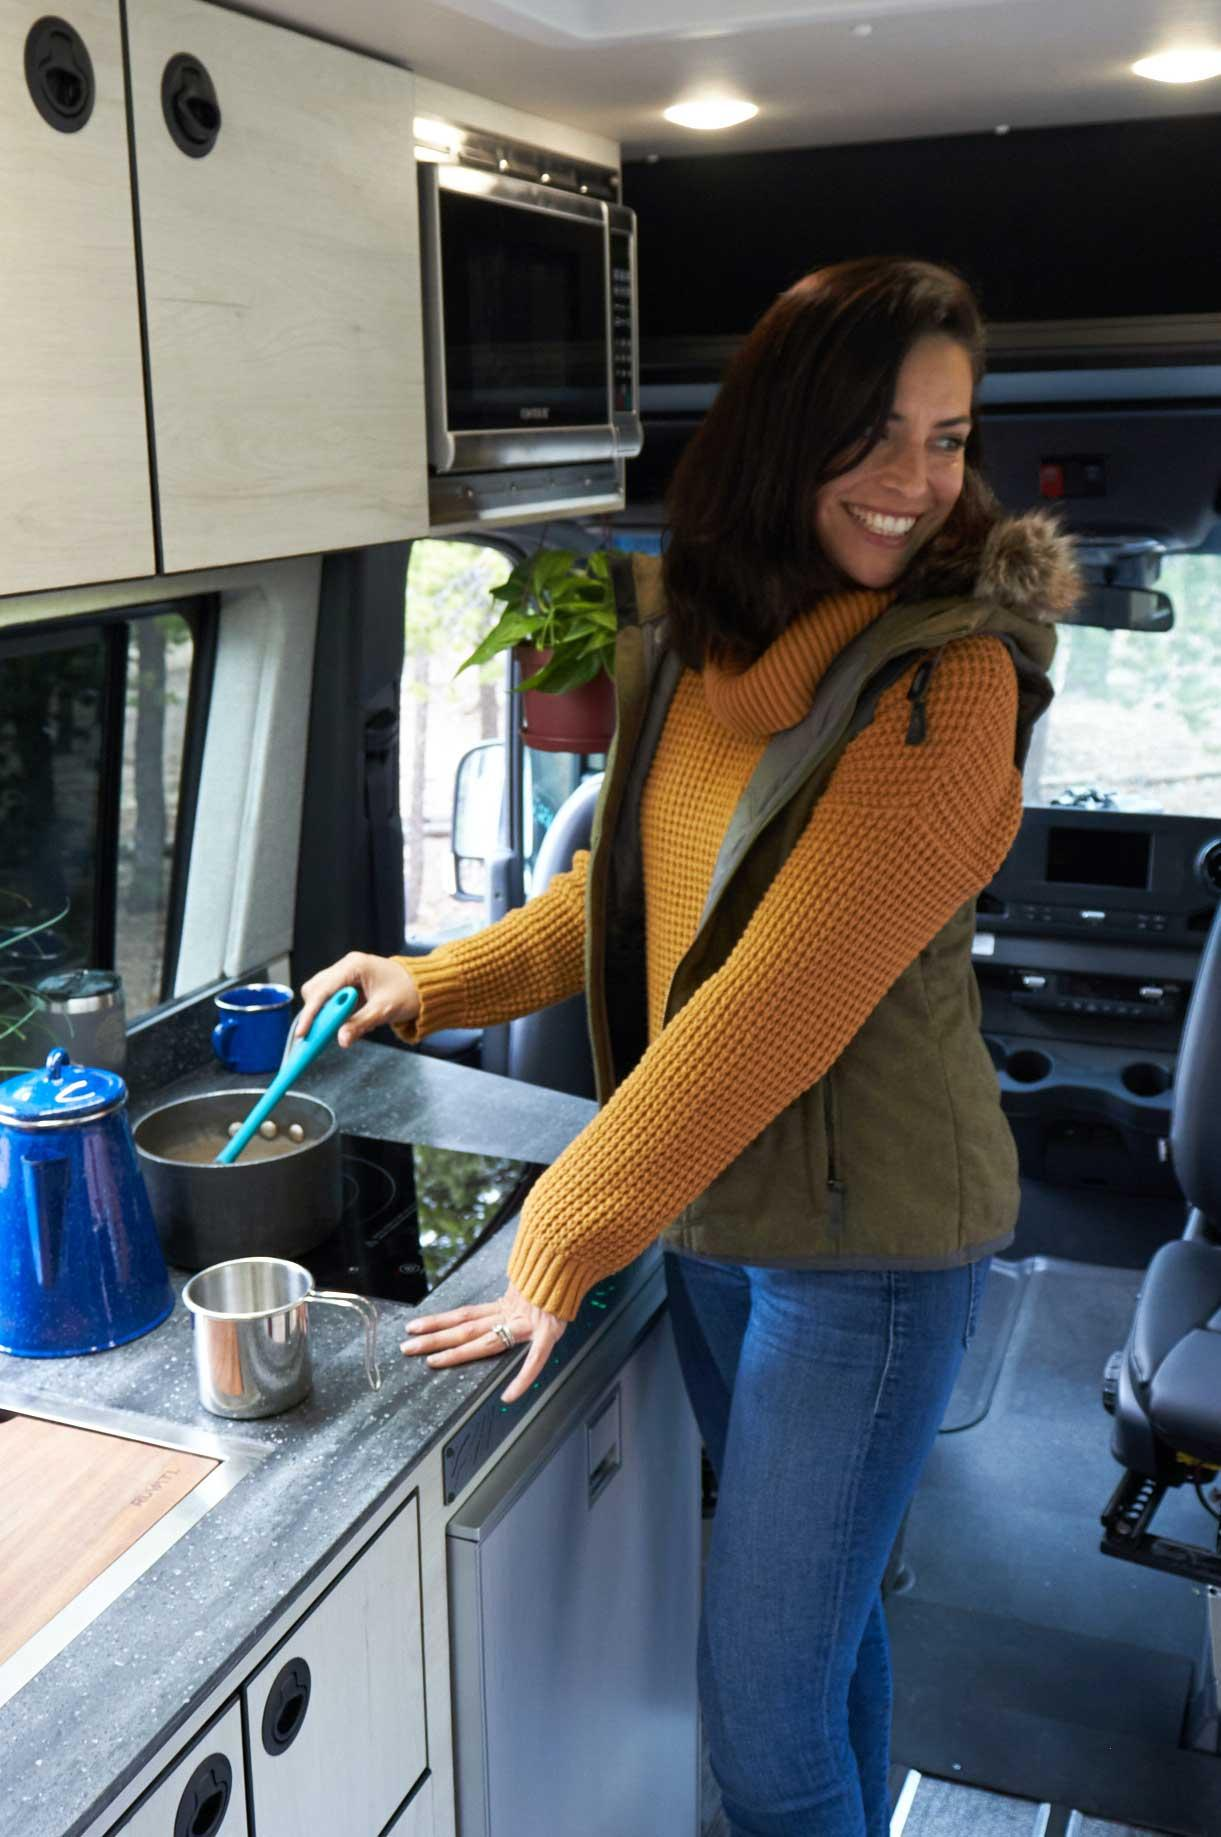 A woman using the kitchen inside an Antero Adventure Van